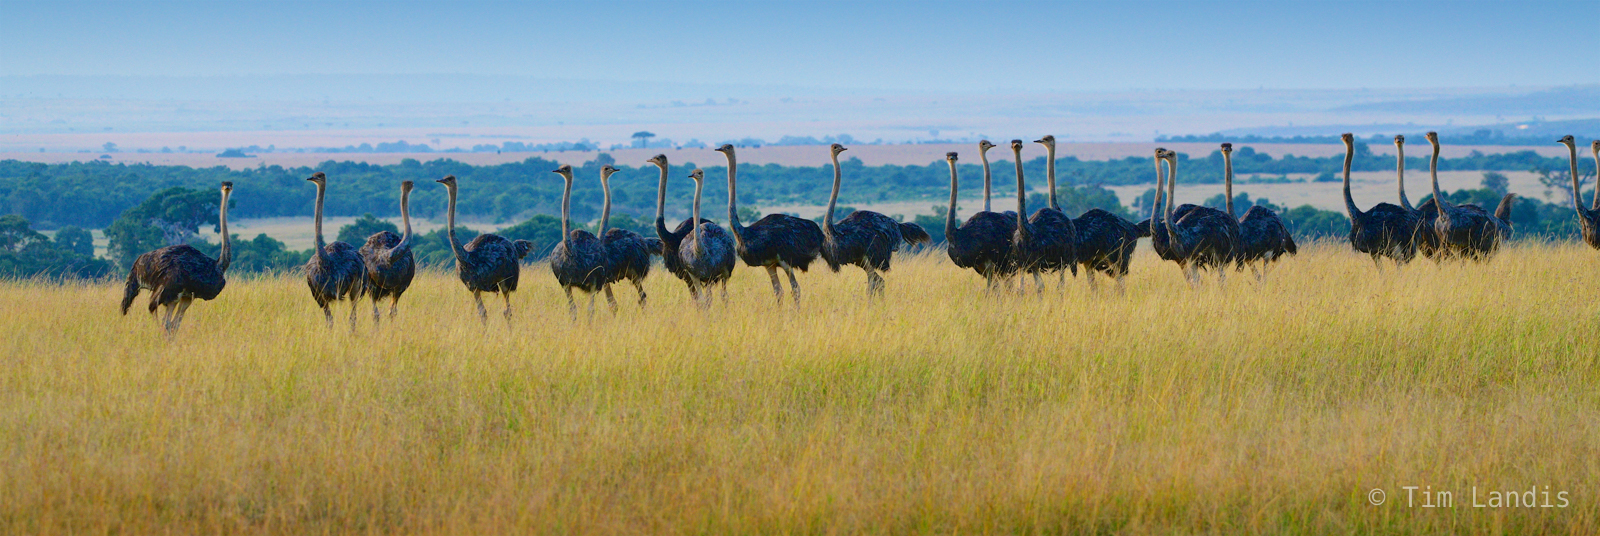 Osterich, osteriches prepare for the night, ostrich formation, the gathering, photo